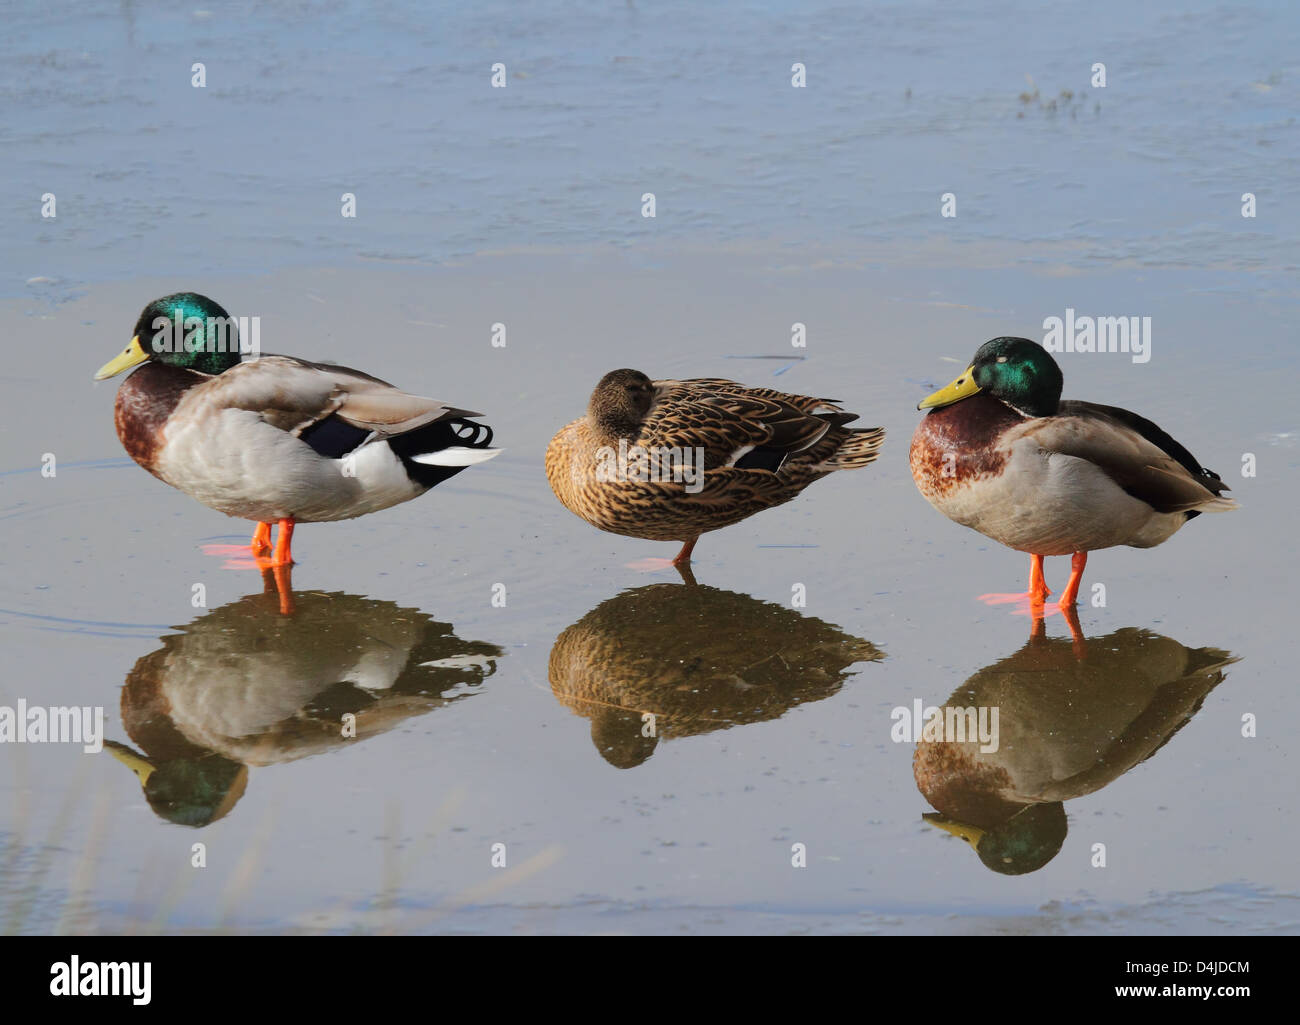 three  mallard ducks stood in shallow water with reflections - Stock Image